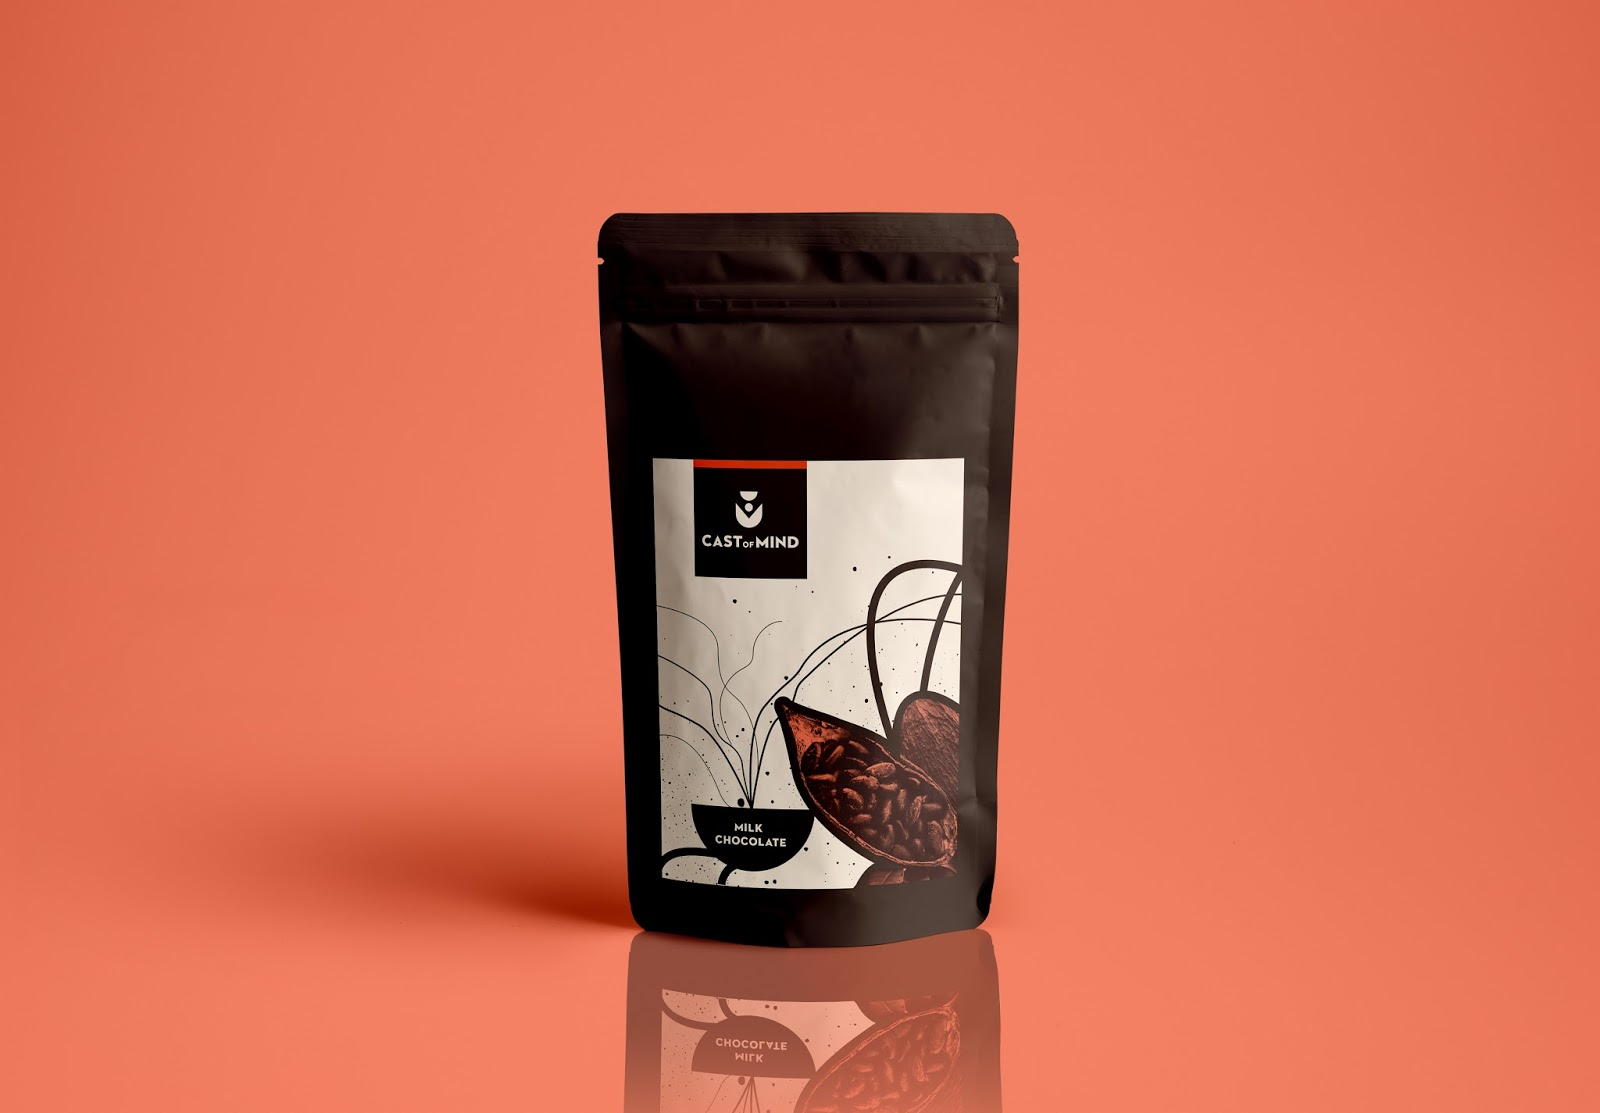 Packaging Design for Coffee & Chocolate Range from Greece